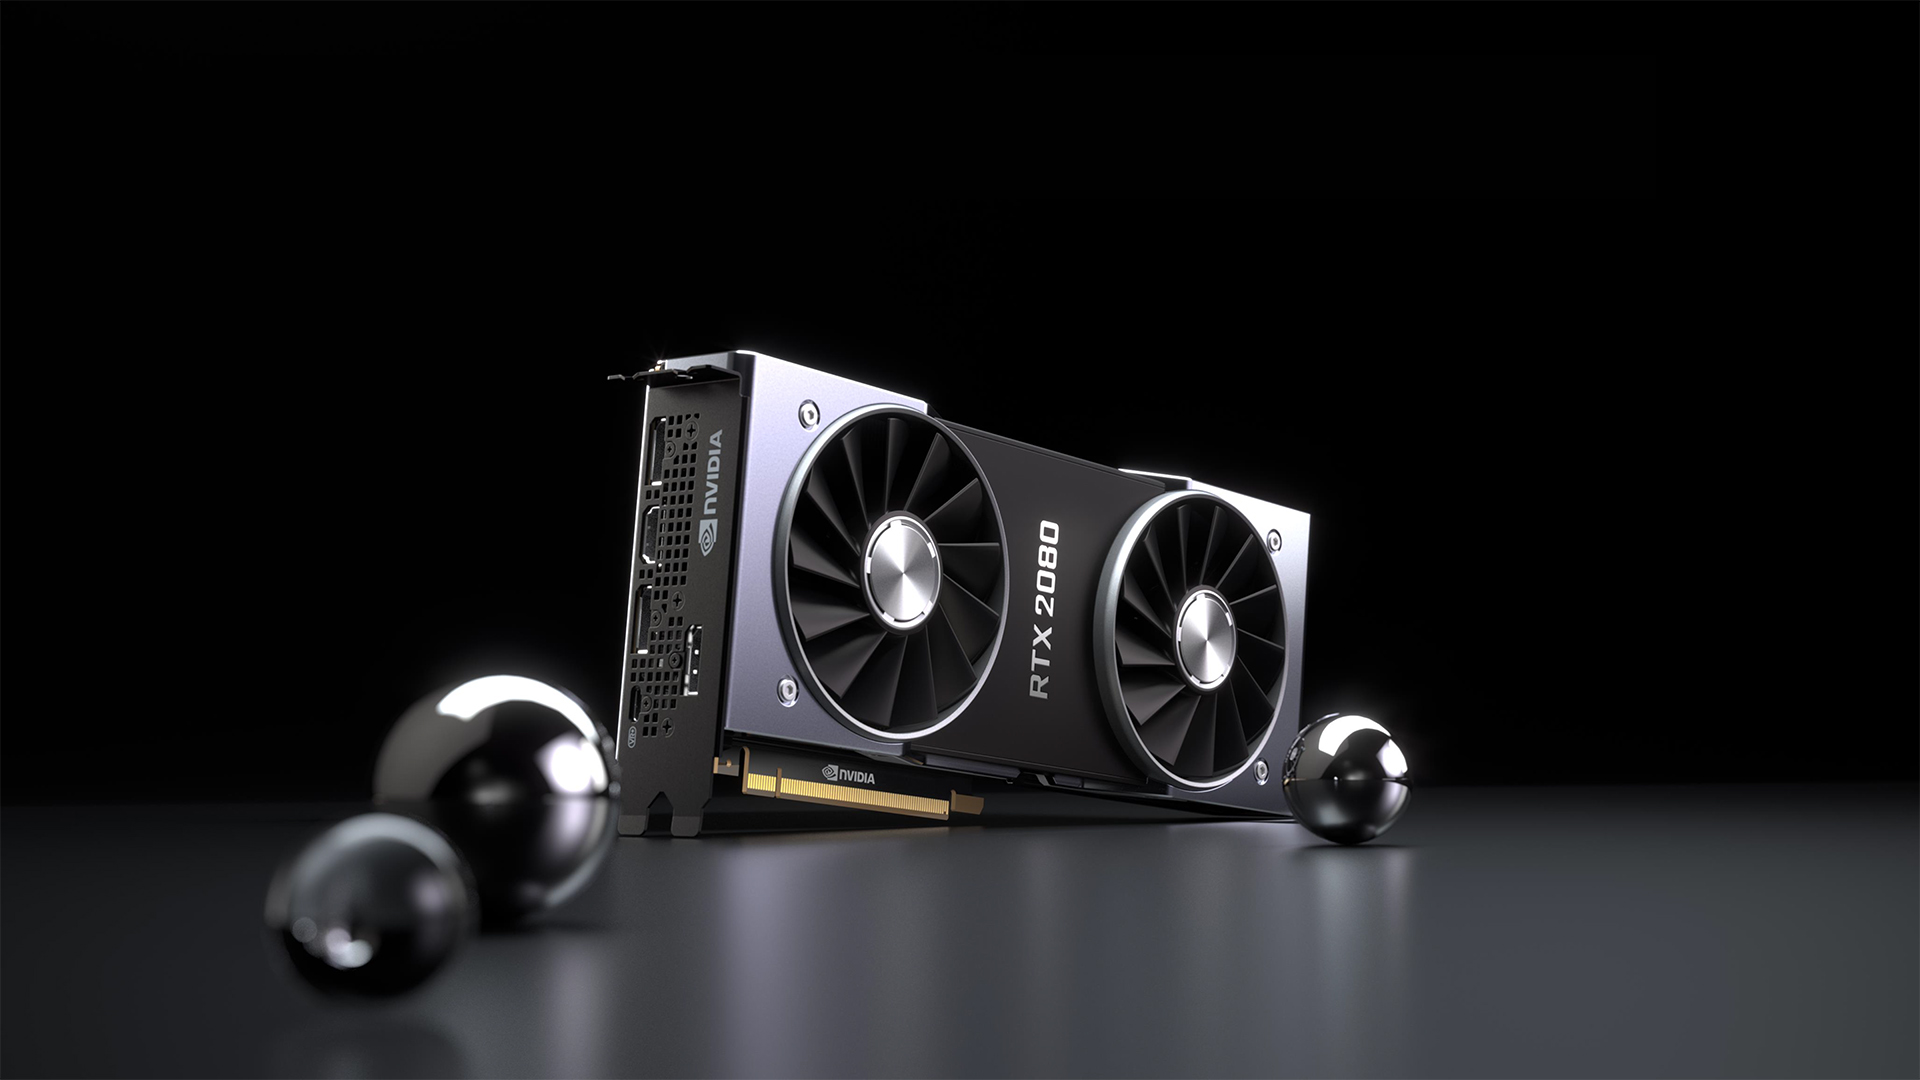 nvidia s geforce rtx 2050 entry level graphics card leaks out